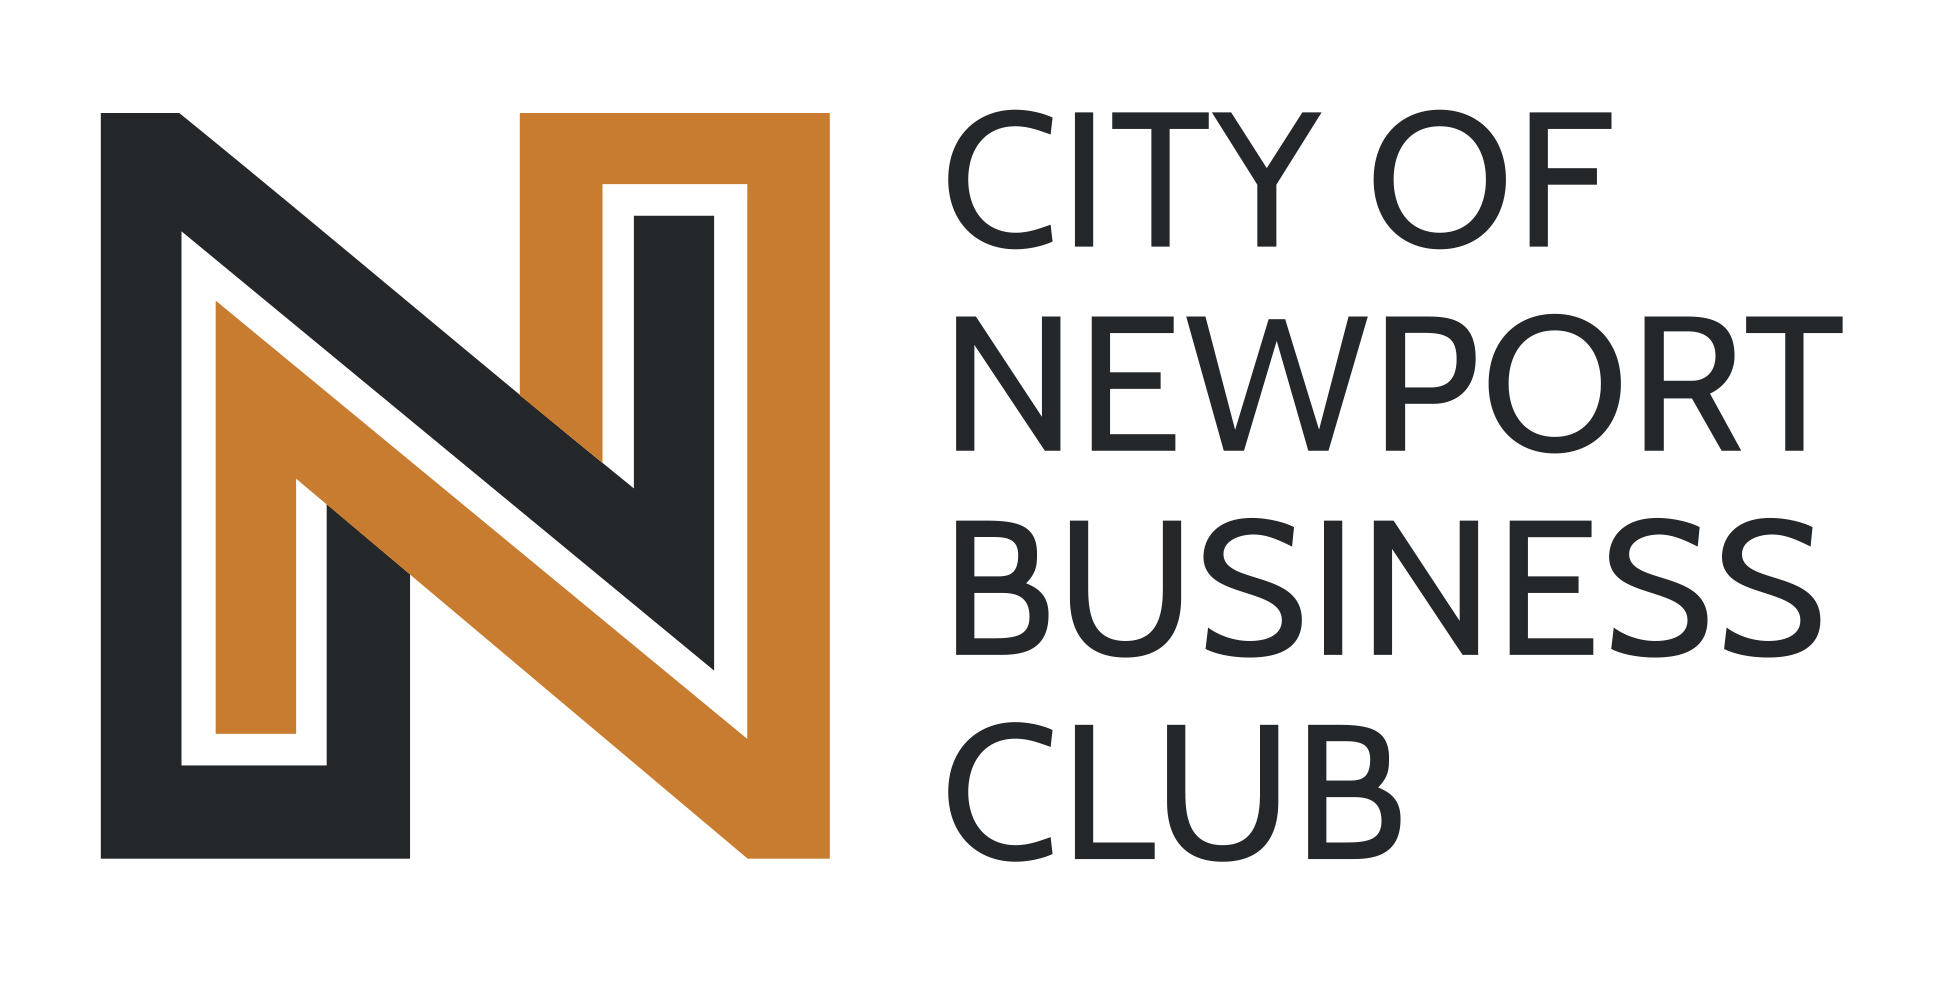 City of Newport Business Club